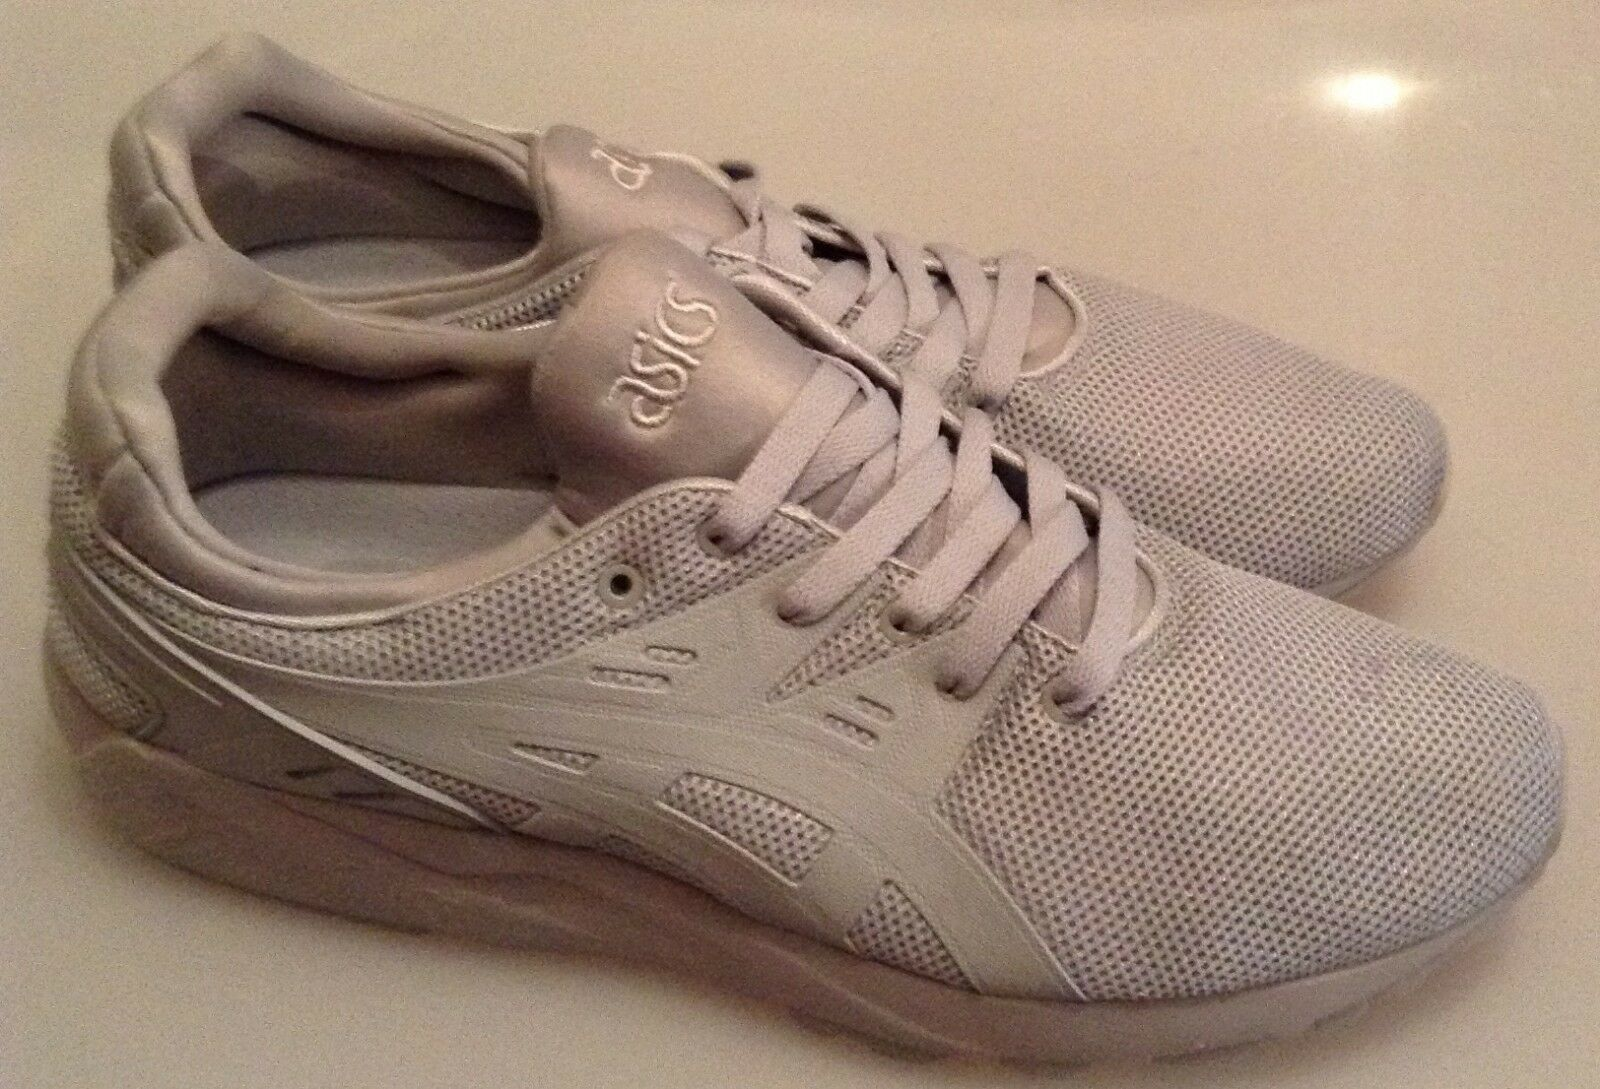 656bc2d93f9e ASICS Gel-kayano Trainer EVO Shoes Men s SNEAKERS Trainers Hn6a0 ...